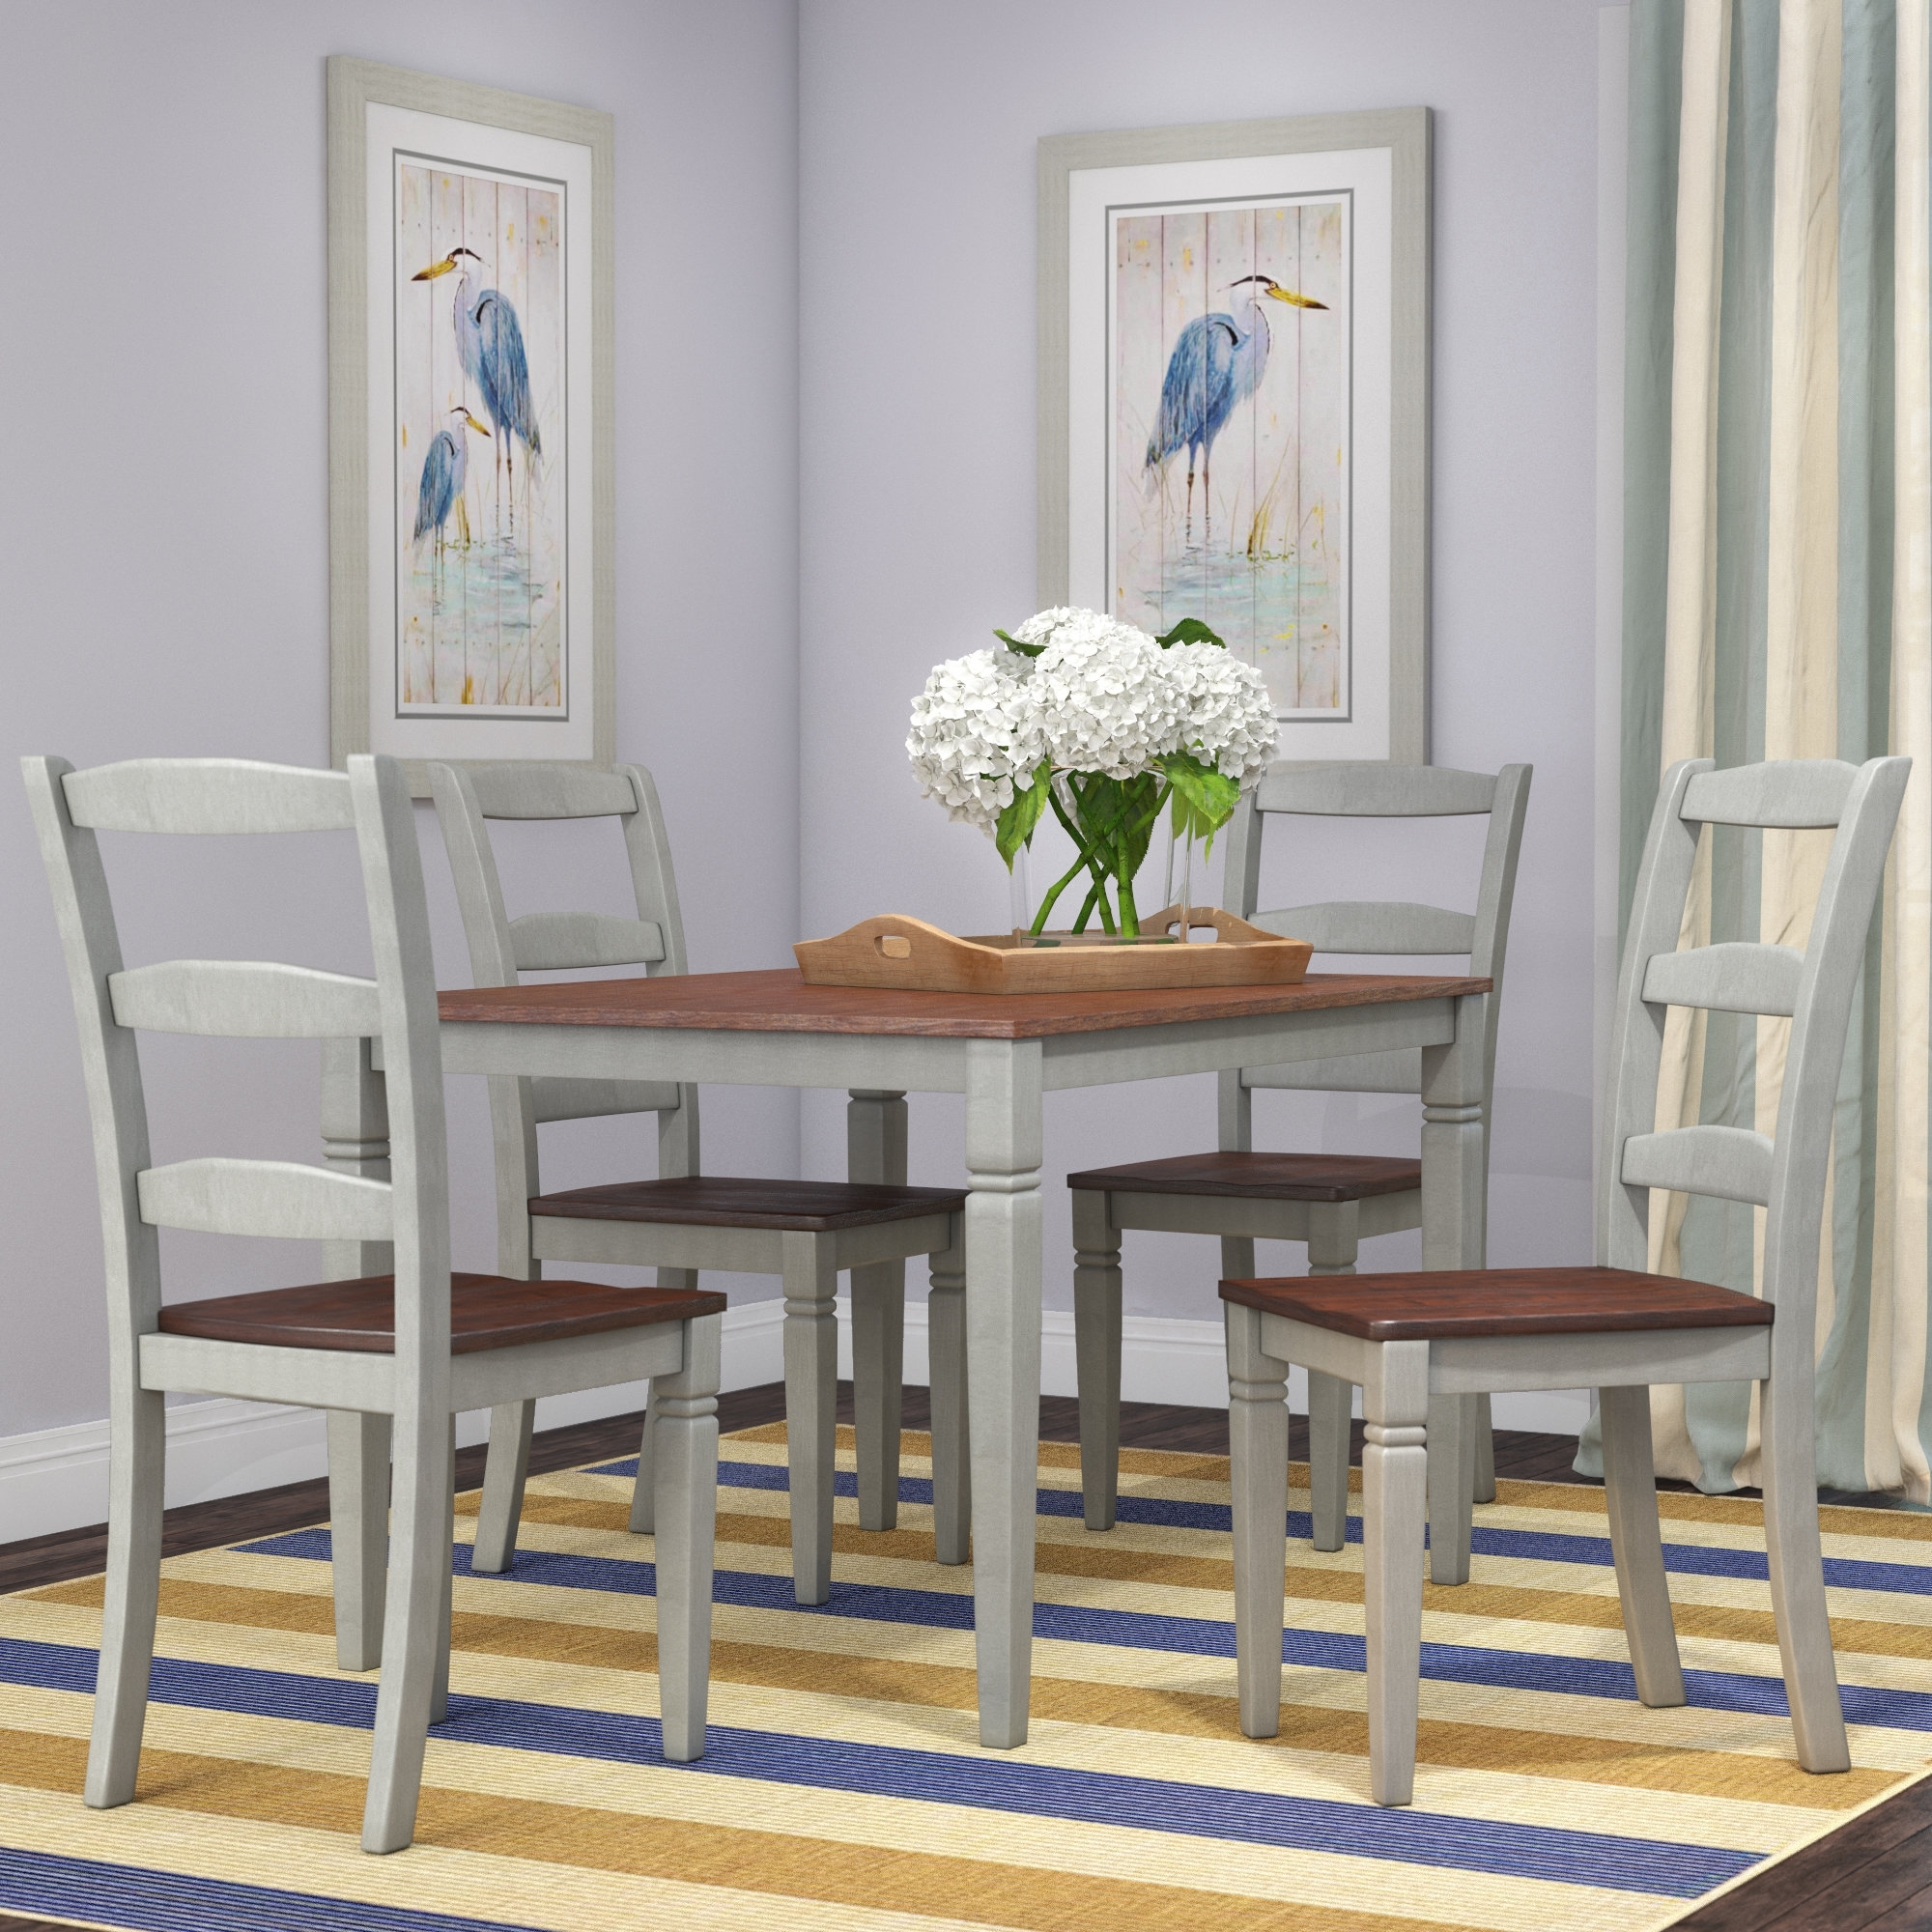 Beachcrest Home Cambridgeport 5 Piece Dining Set & Reviews | Wayfair Pertaining To Newest Kirsten 6 Piece Dining Sets (Image 7 of 20)